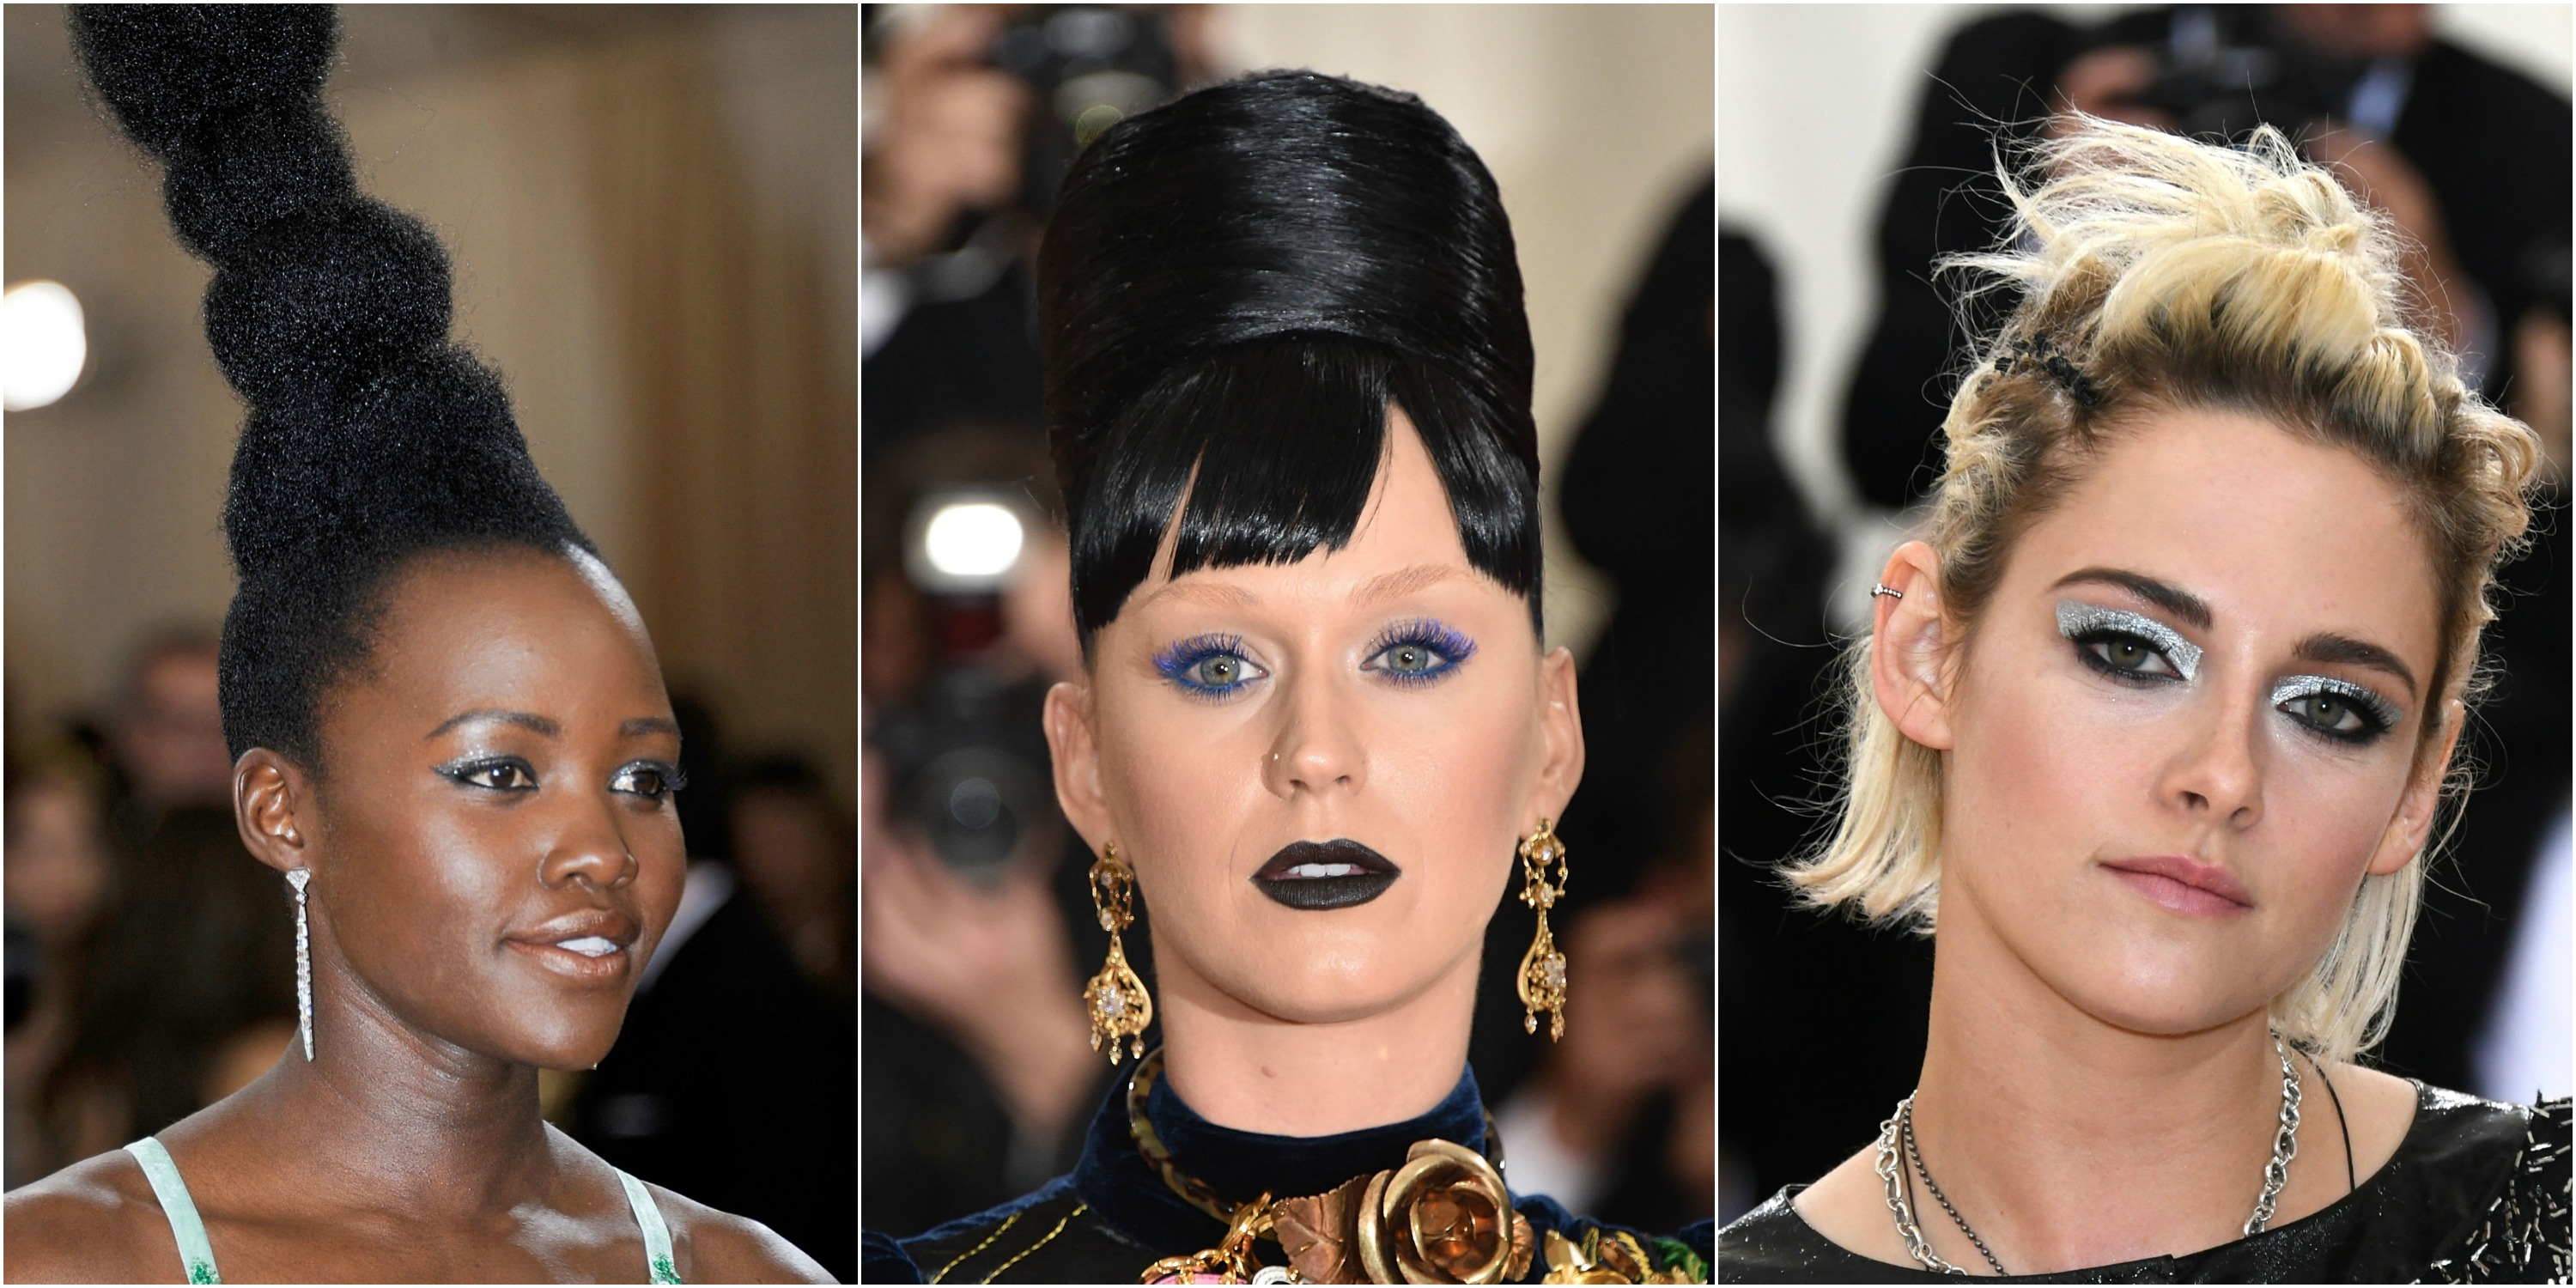 6 Craziest Hairstyles From The 2016 Met Gala Red Carpet